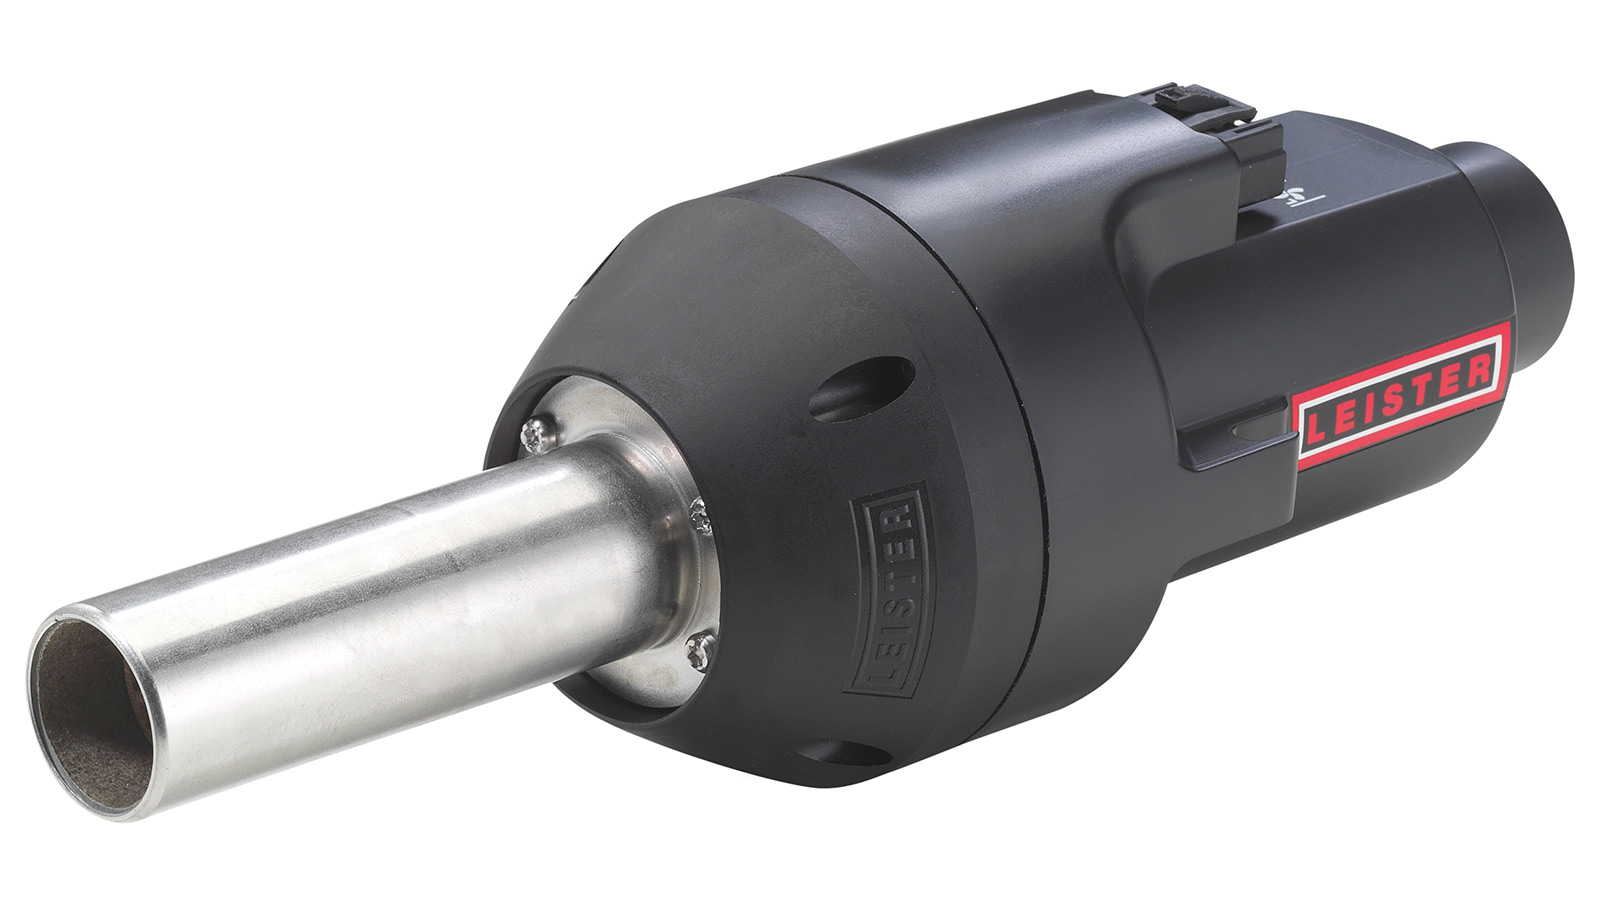 Ignition blowers